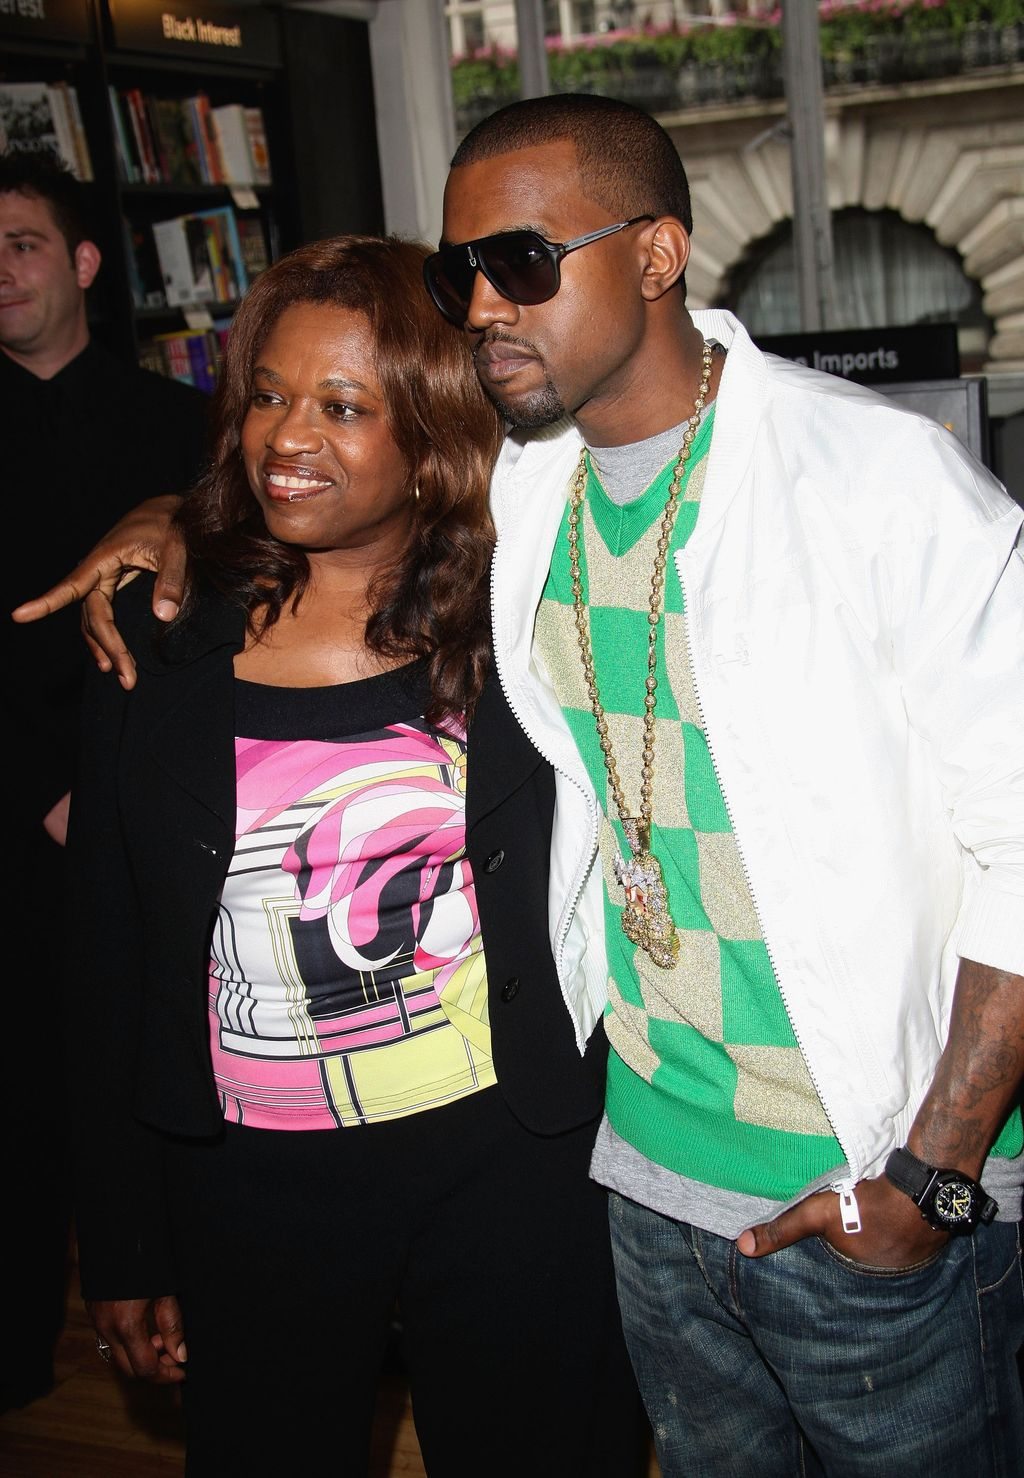 LONDON - JUNE 30:  US hip-hop star Kanye West poses with his mother Donda prior to signing copies of 'Raising Kanye: Life Lessons From The Mother Of A Hip-Hop Superstar' at Waterstones on June 30, 2007 in London.   (Photo by MJ Kim/Getty Images)